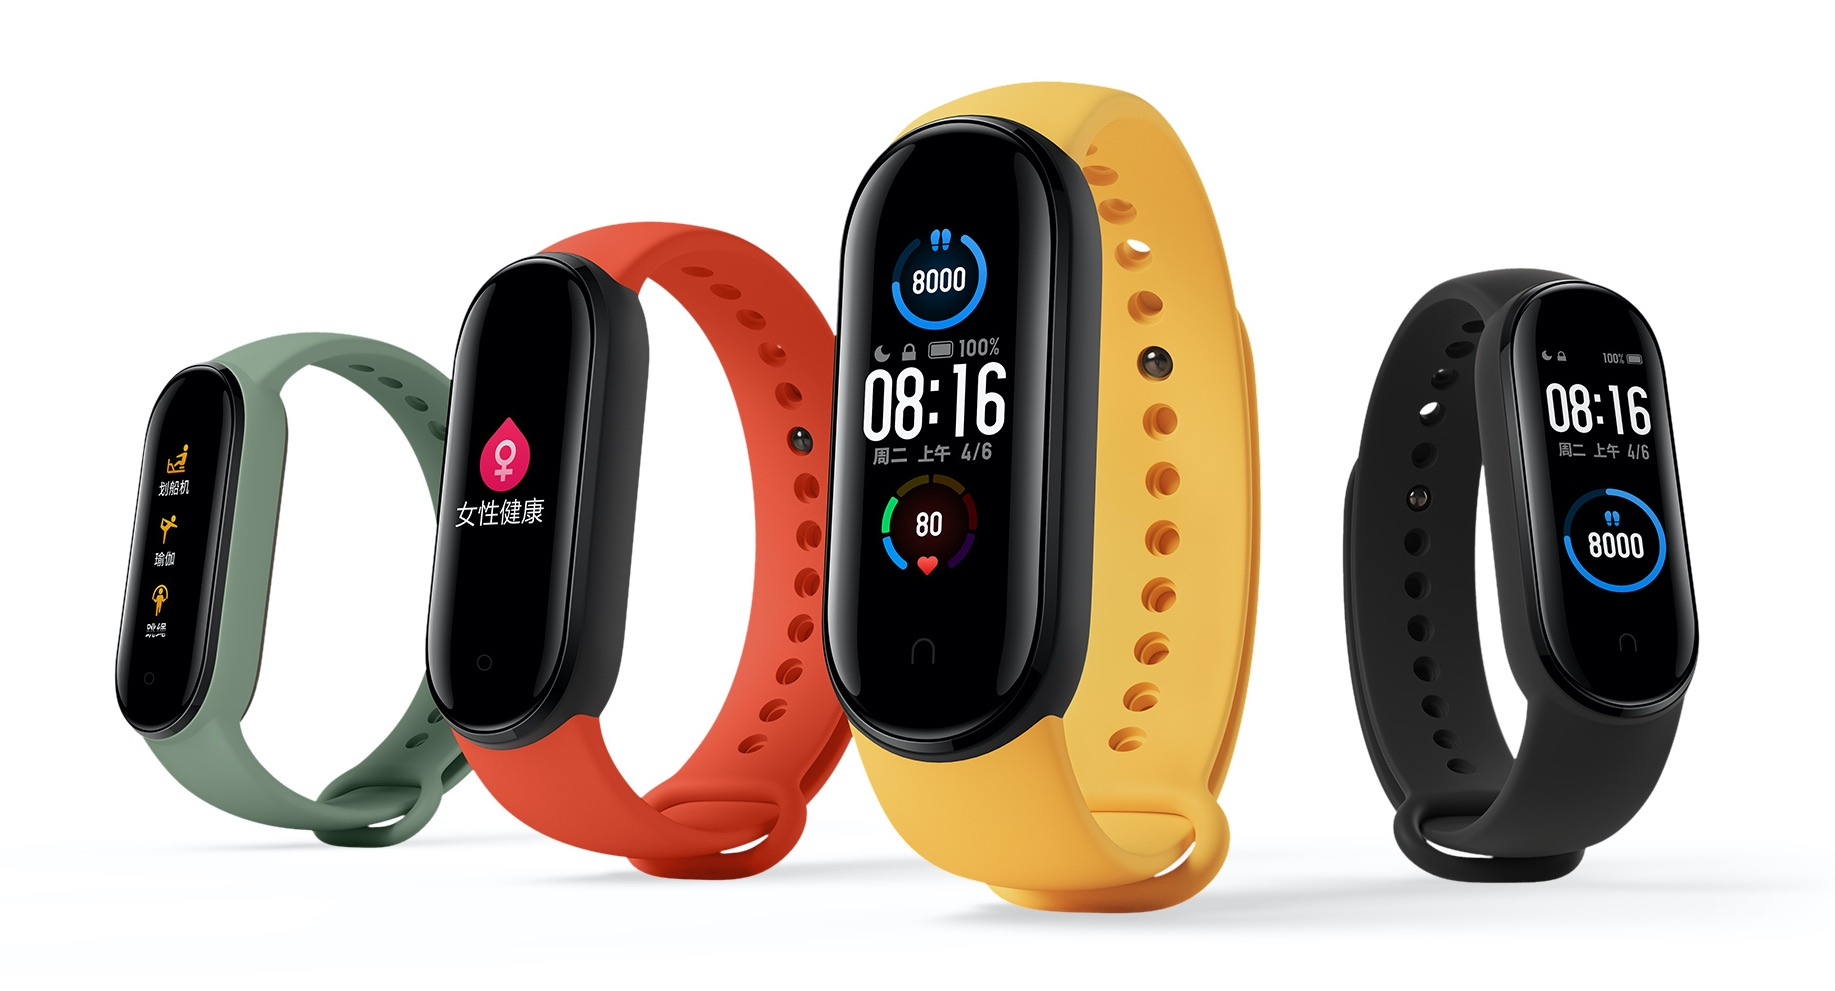 Xiaomi Mi Band 5 launched with NFC, 1.2-inch color display